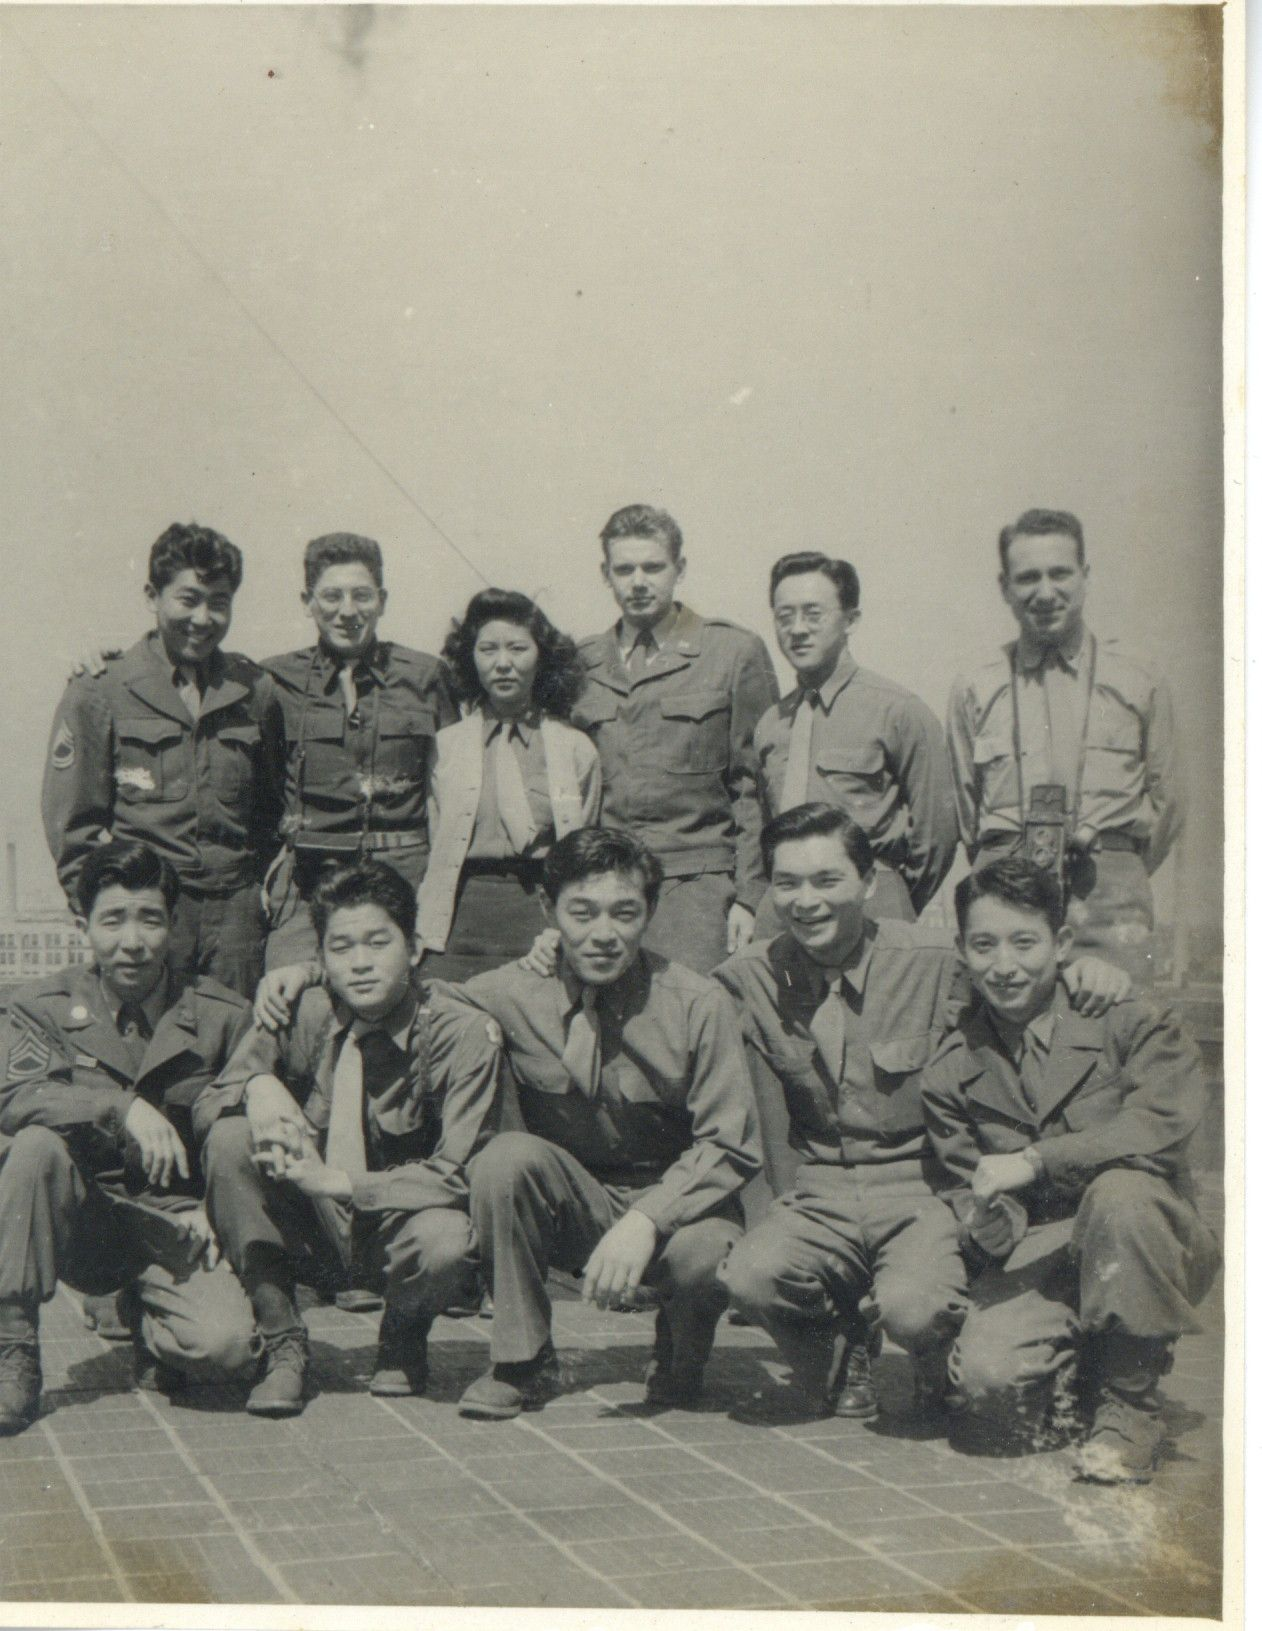 group photo of CCD personnel 1946